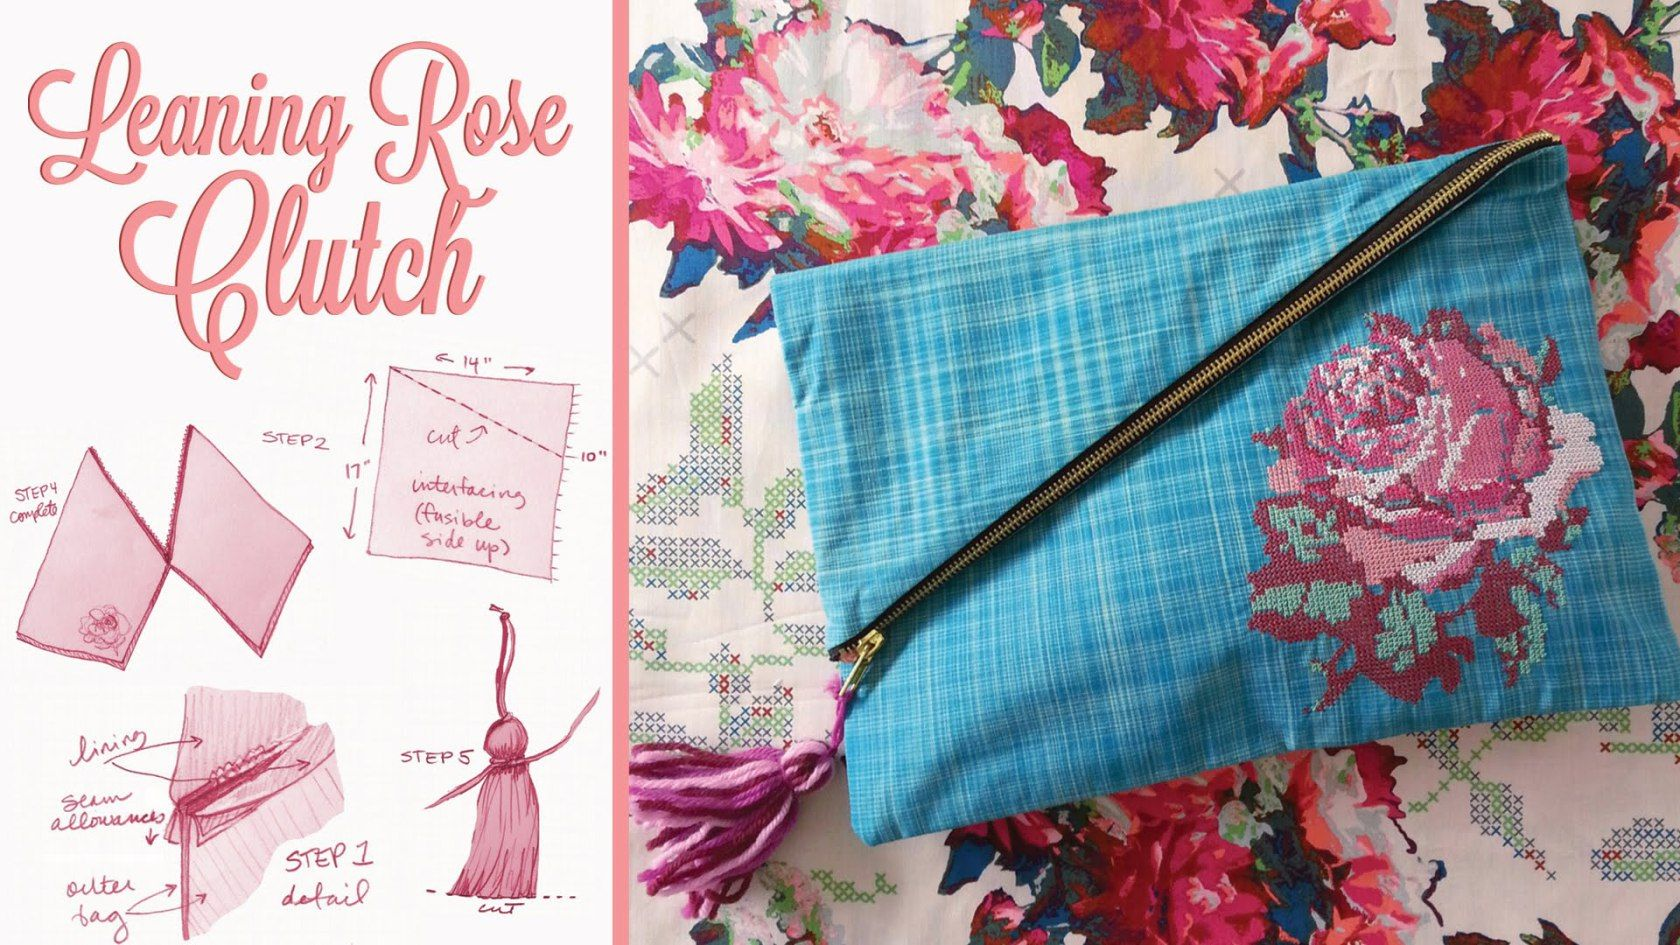 Learn to sew the leaning rose clutch purse anna maria horner learn to sew the leaning rose clutch purse jeuxipadfo Gallery